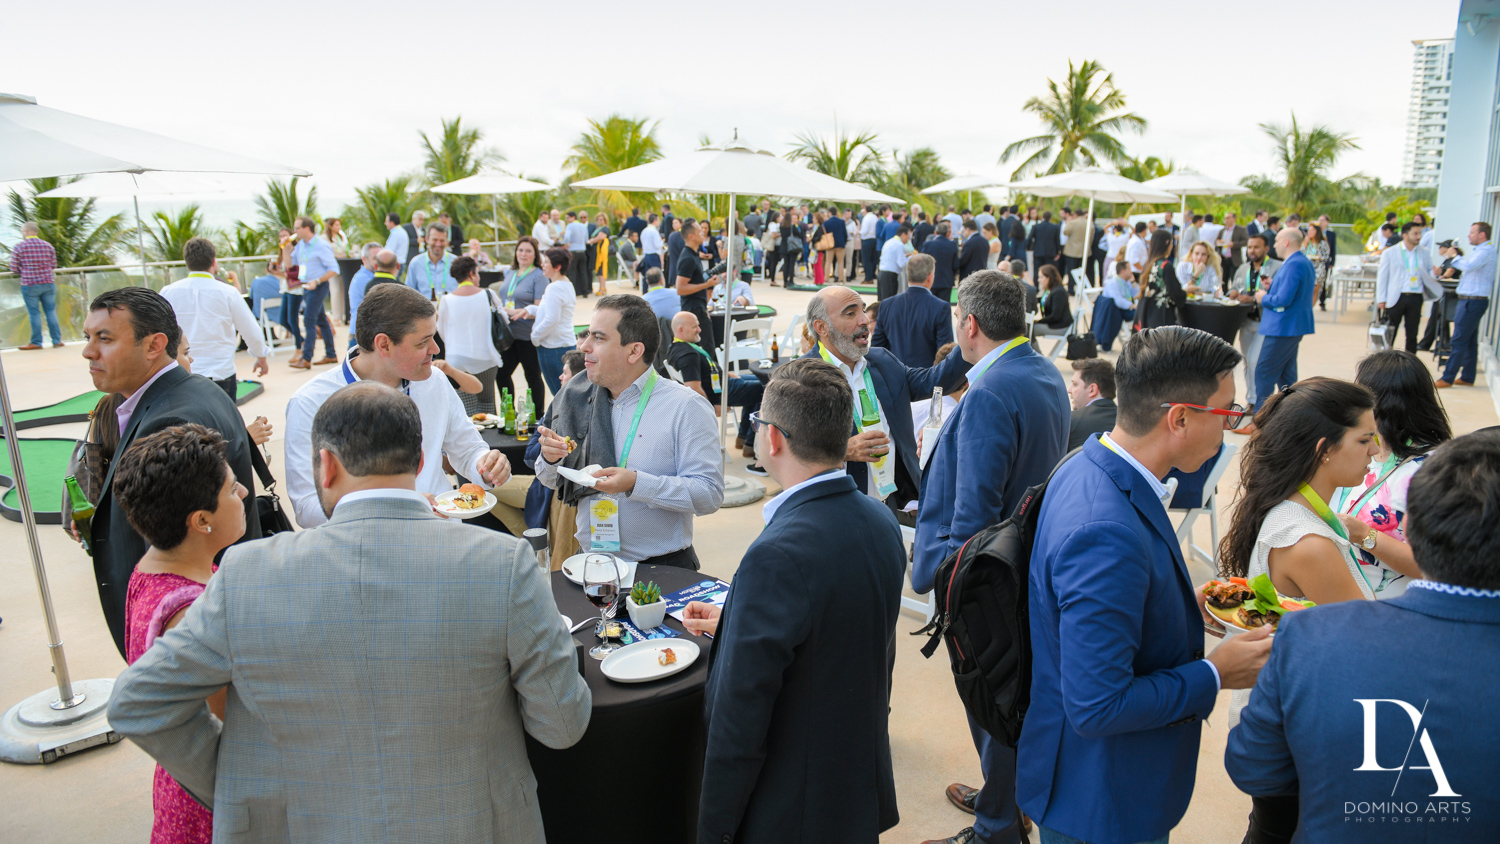 networking at Fintech Americas Banking Conference Miami by Domino Arts Photography